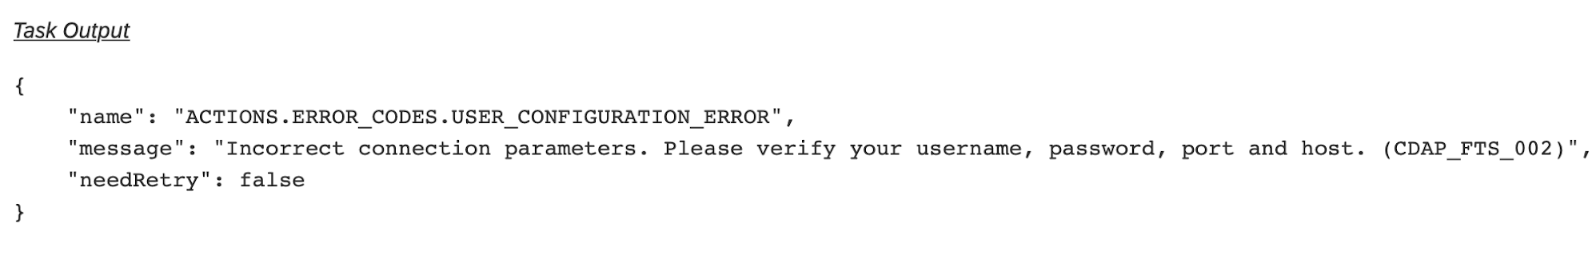 the task output section of a failed action giving the error why it failed